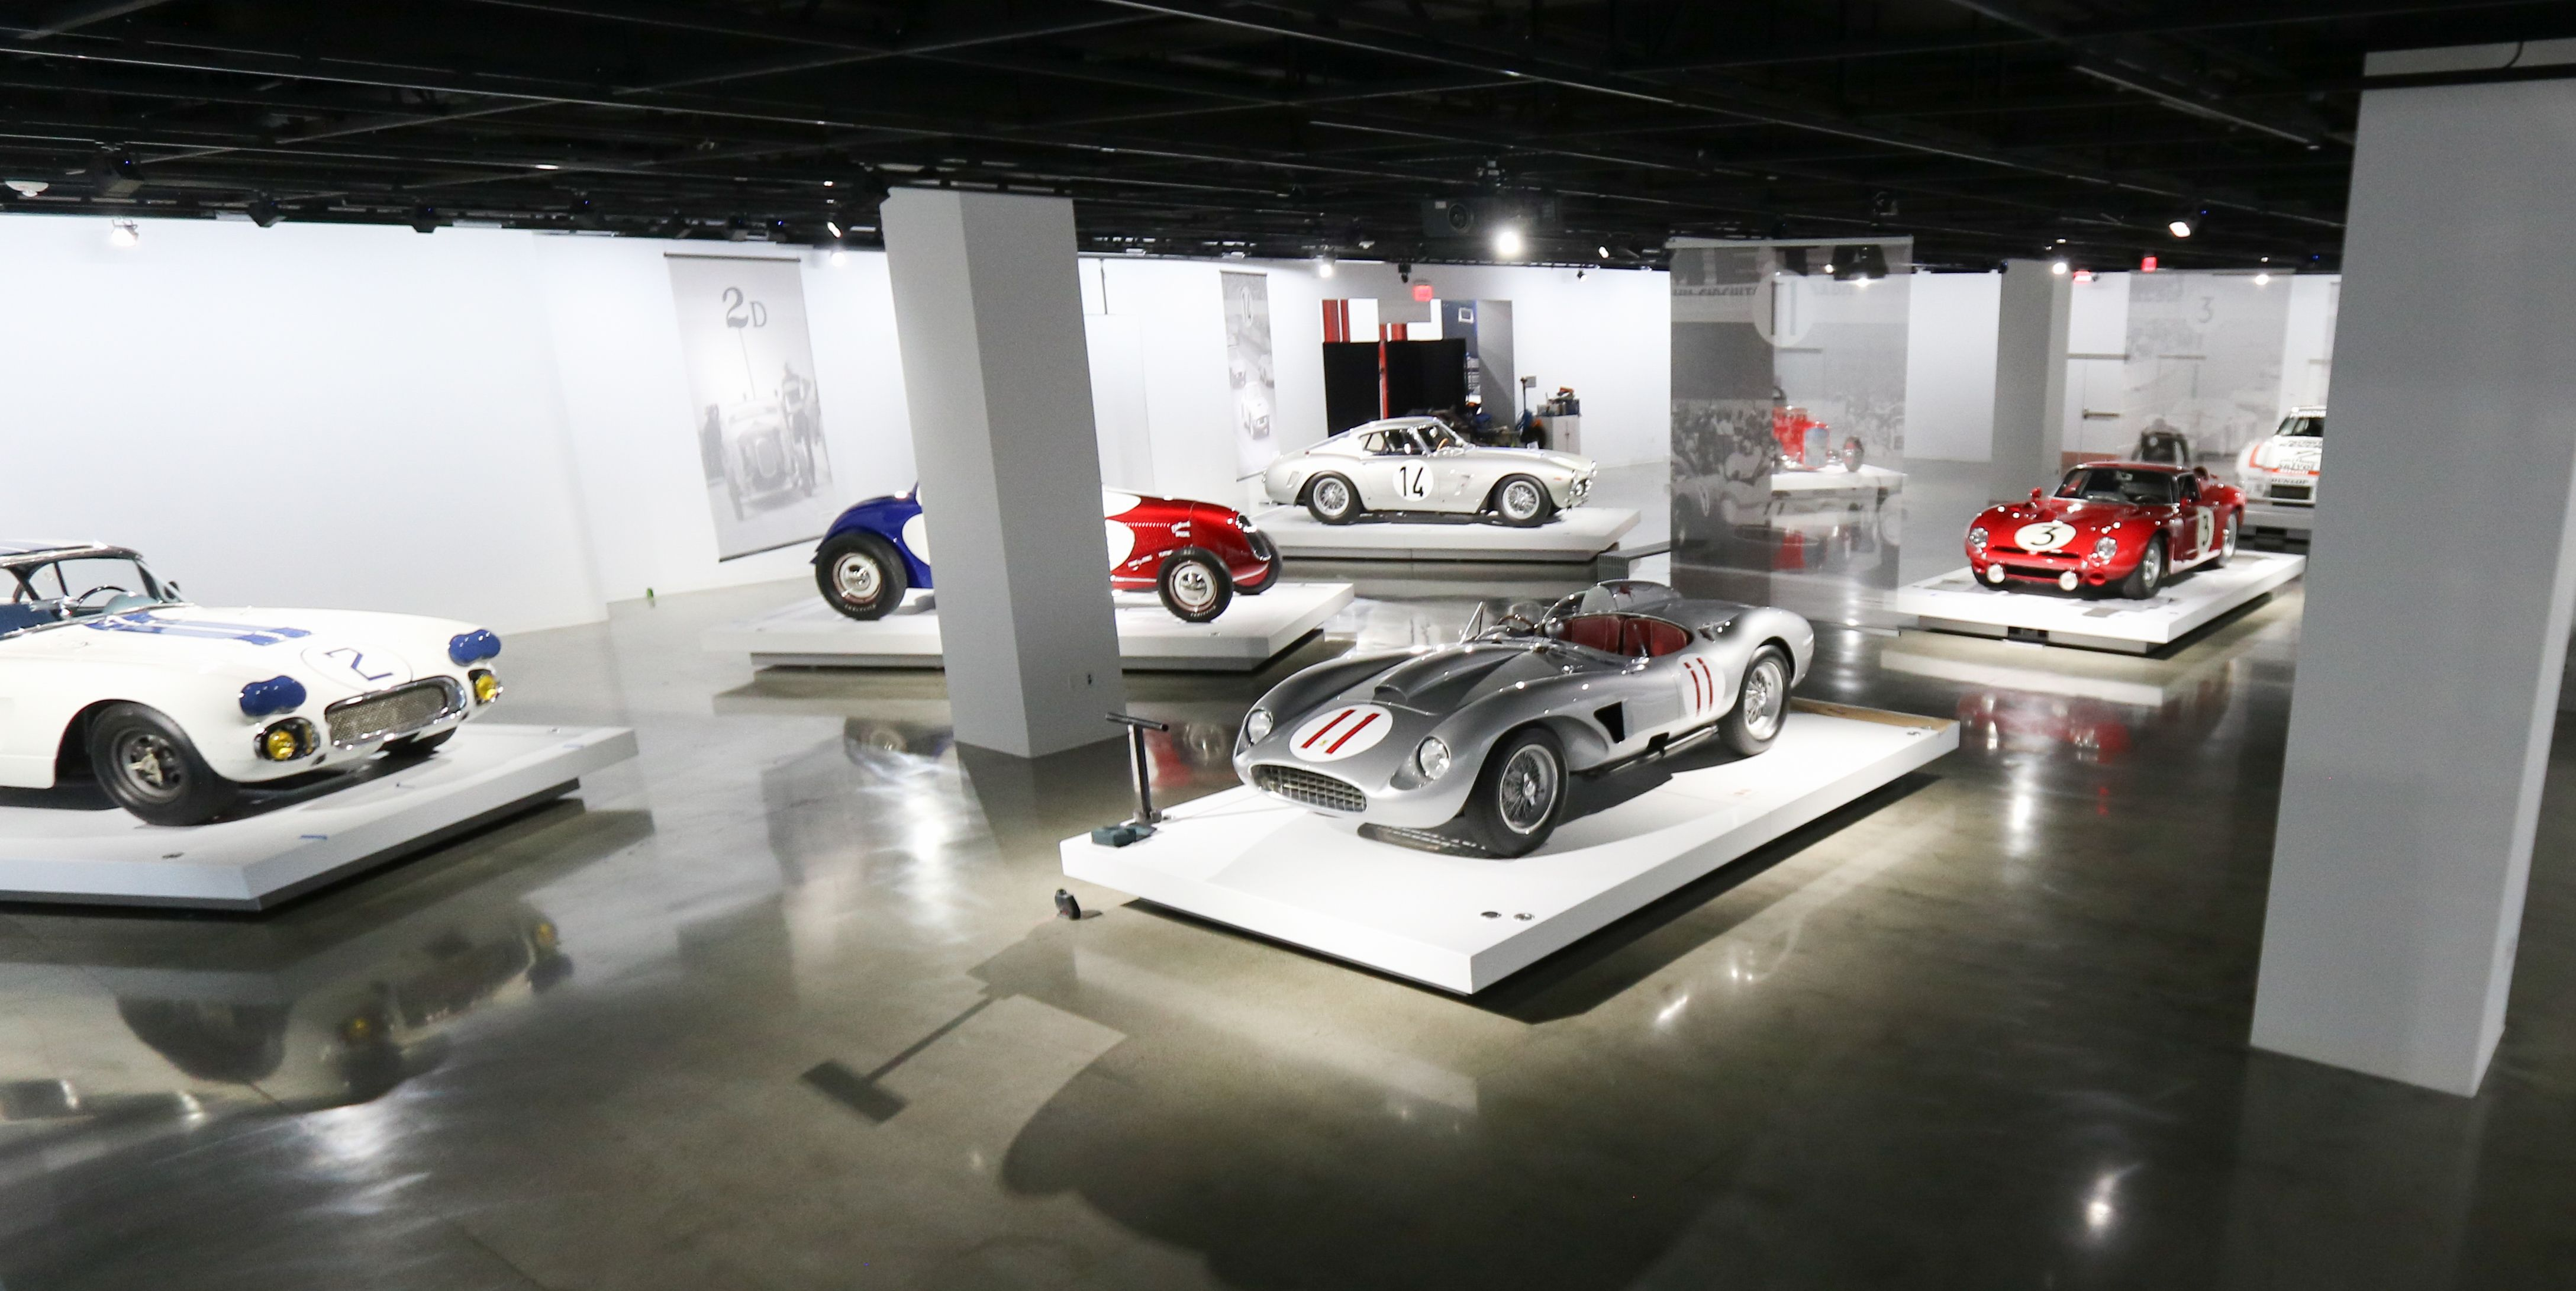 Bruce Meyer's Exhibit of Epic Race Cars Opens at Petersen Automotive Museum